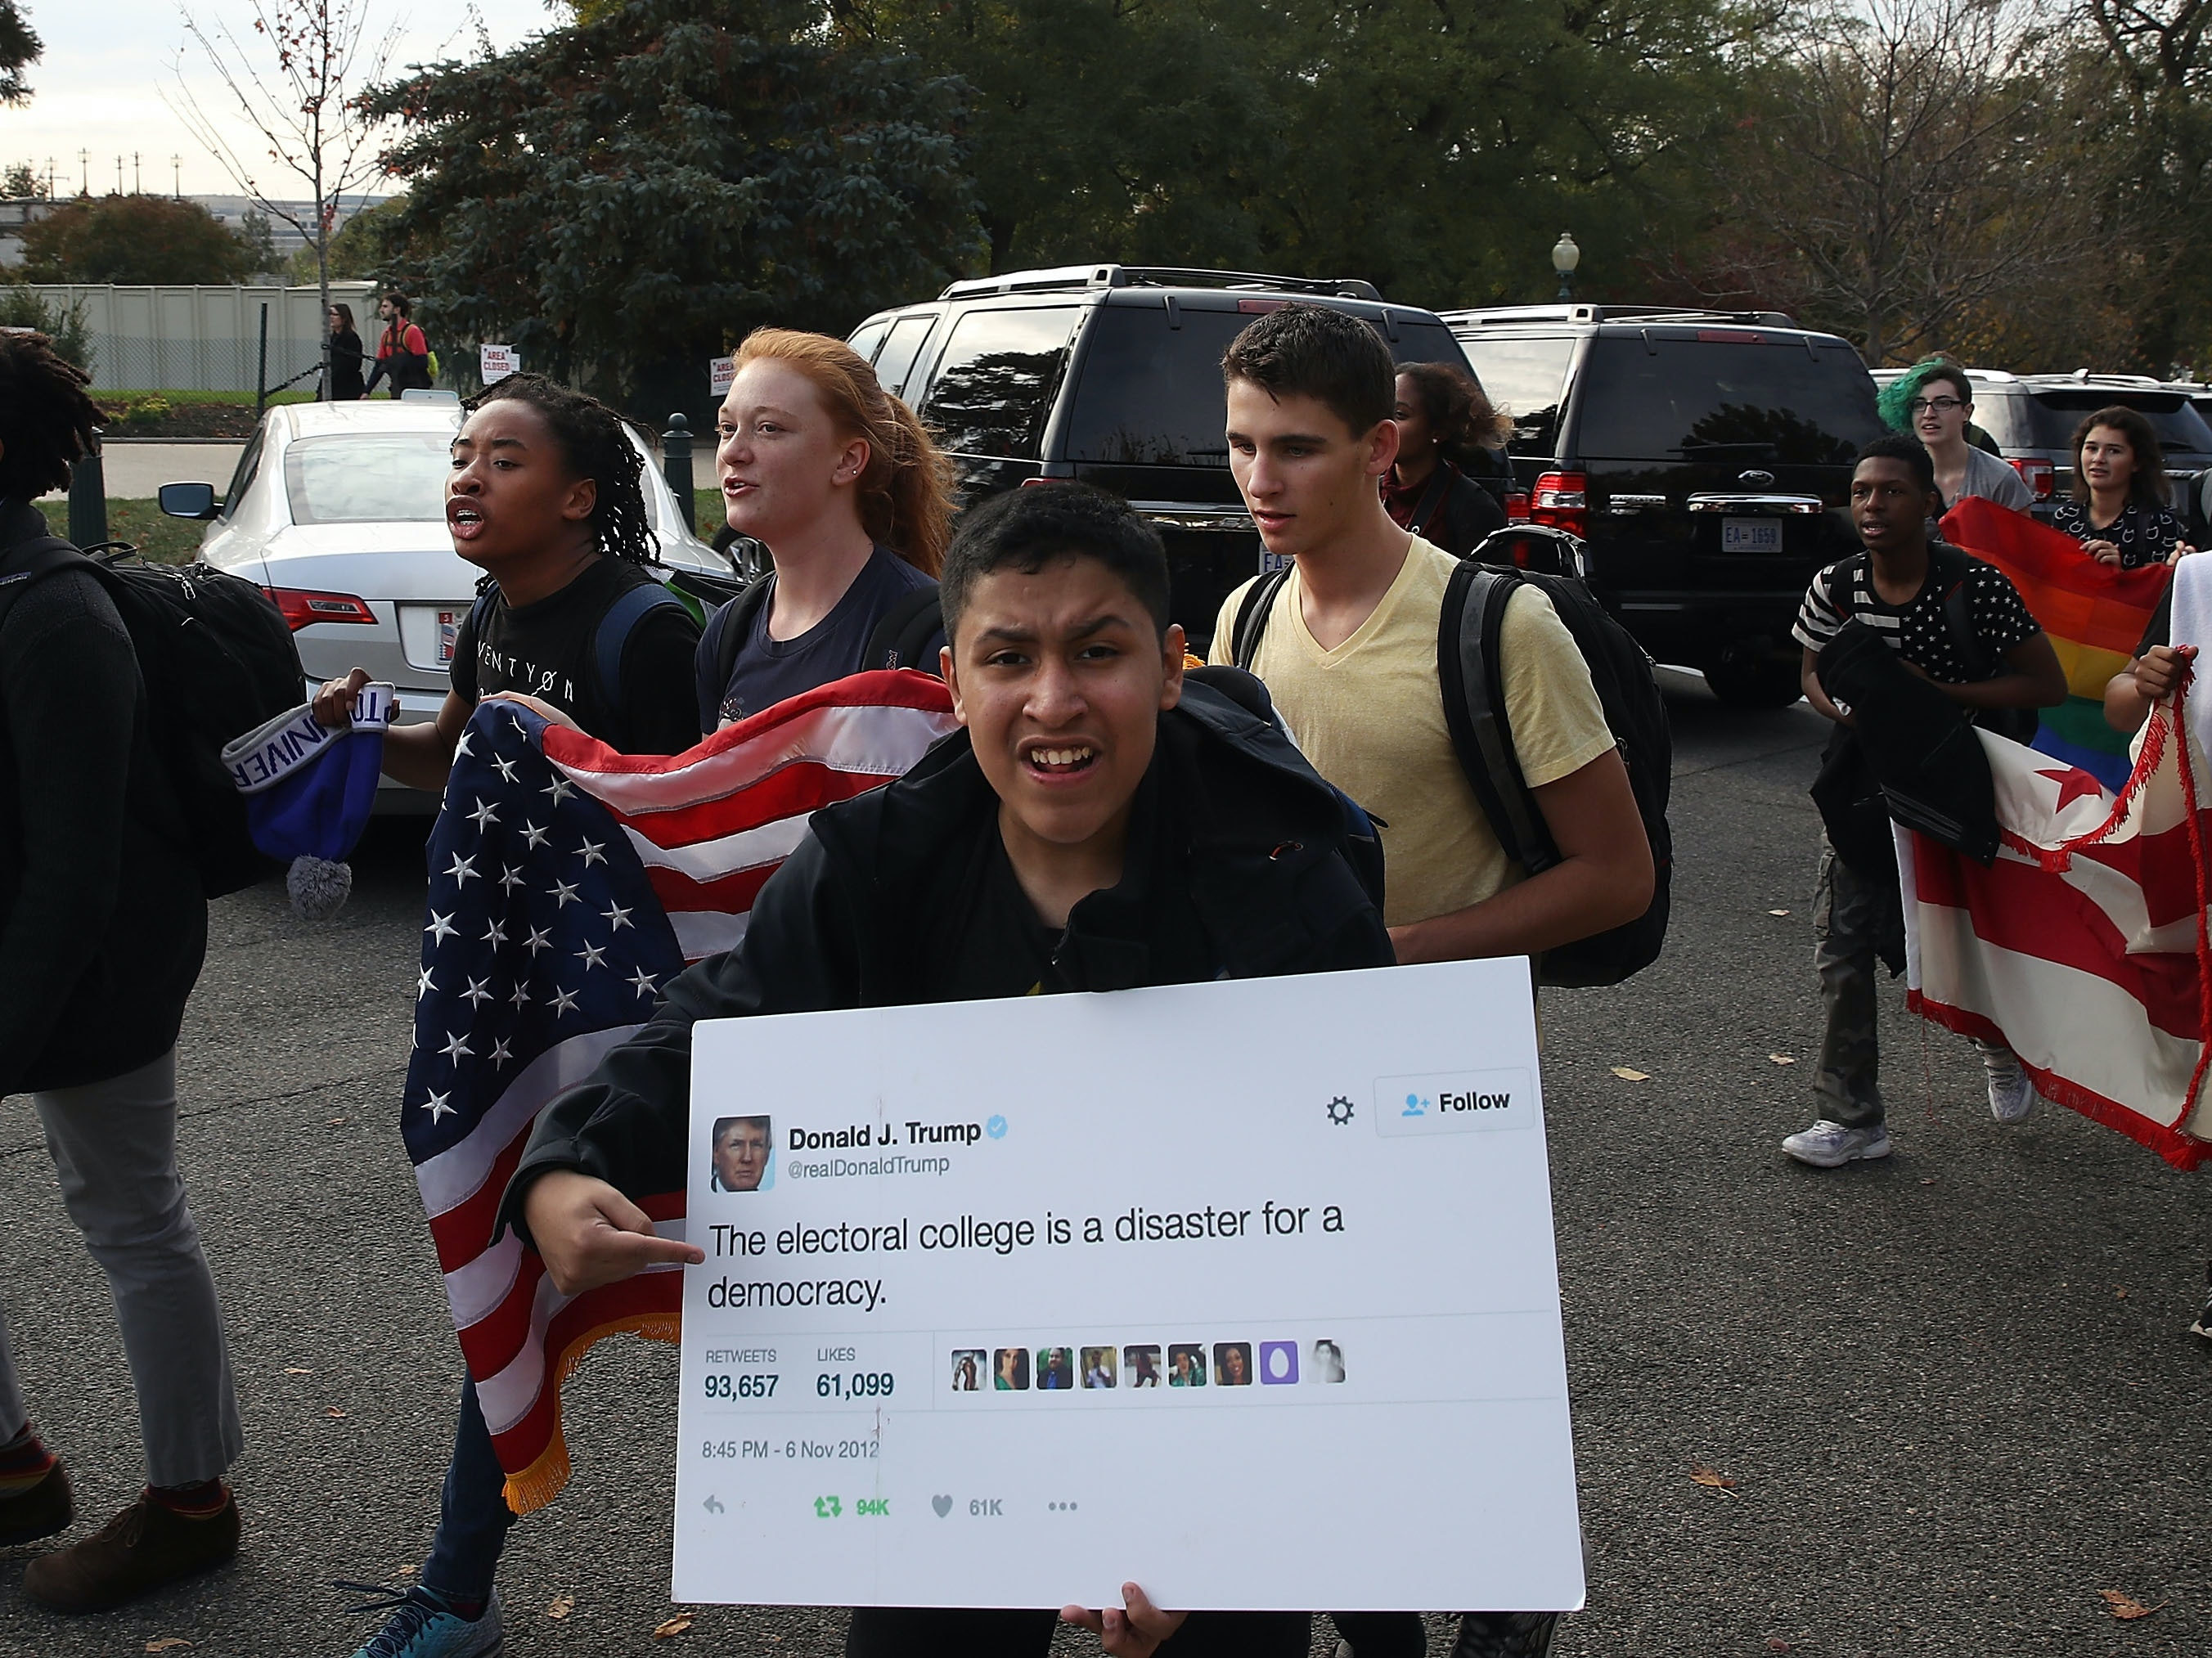 DC area students protest the election of President-elect Donald Trump, while marching past the U.S. Capitol. The election of Trump as president has sparked protests in cities across the country.